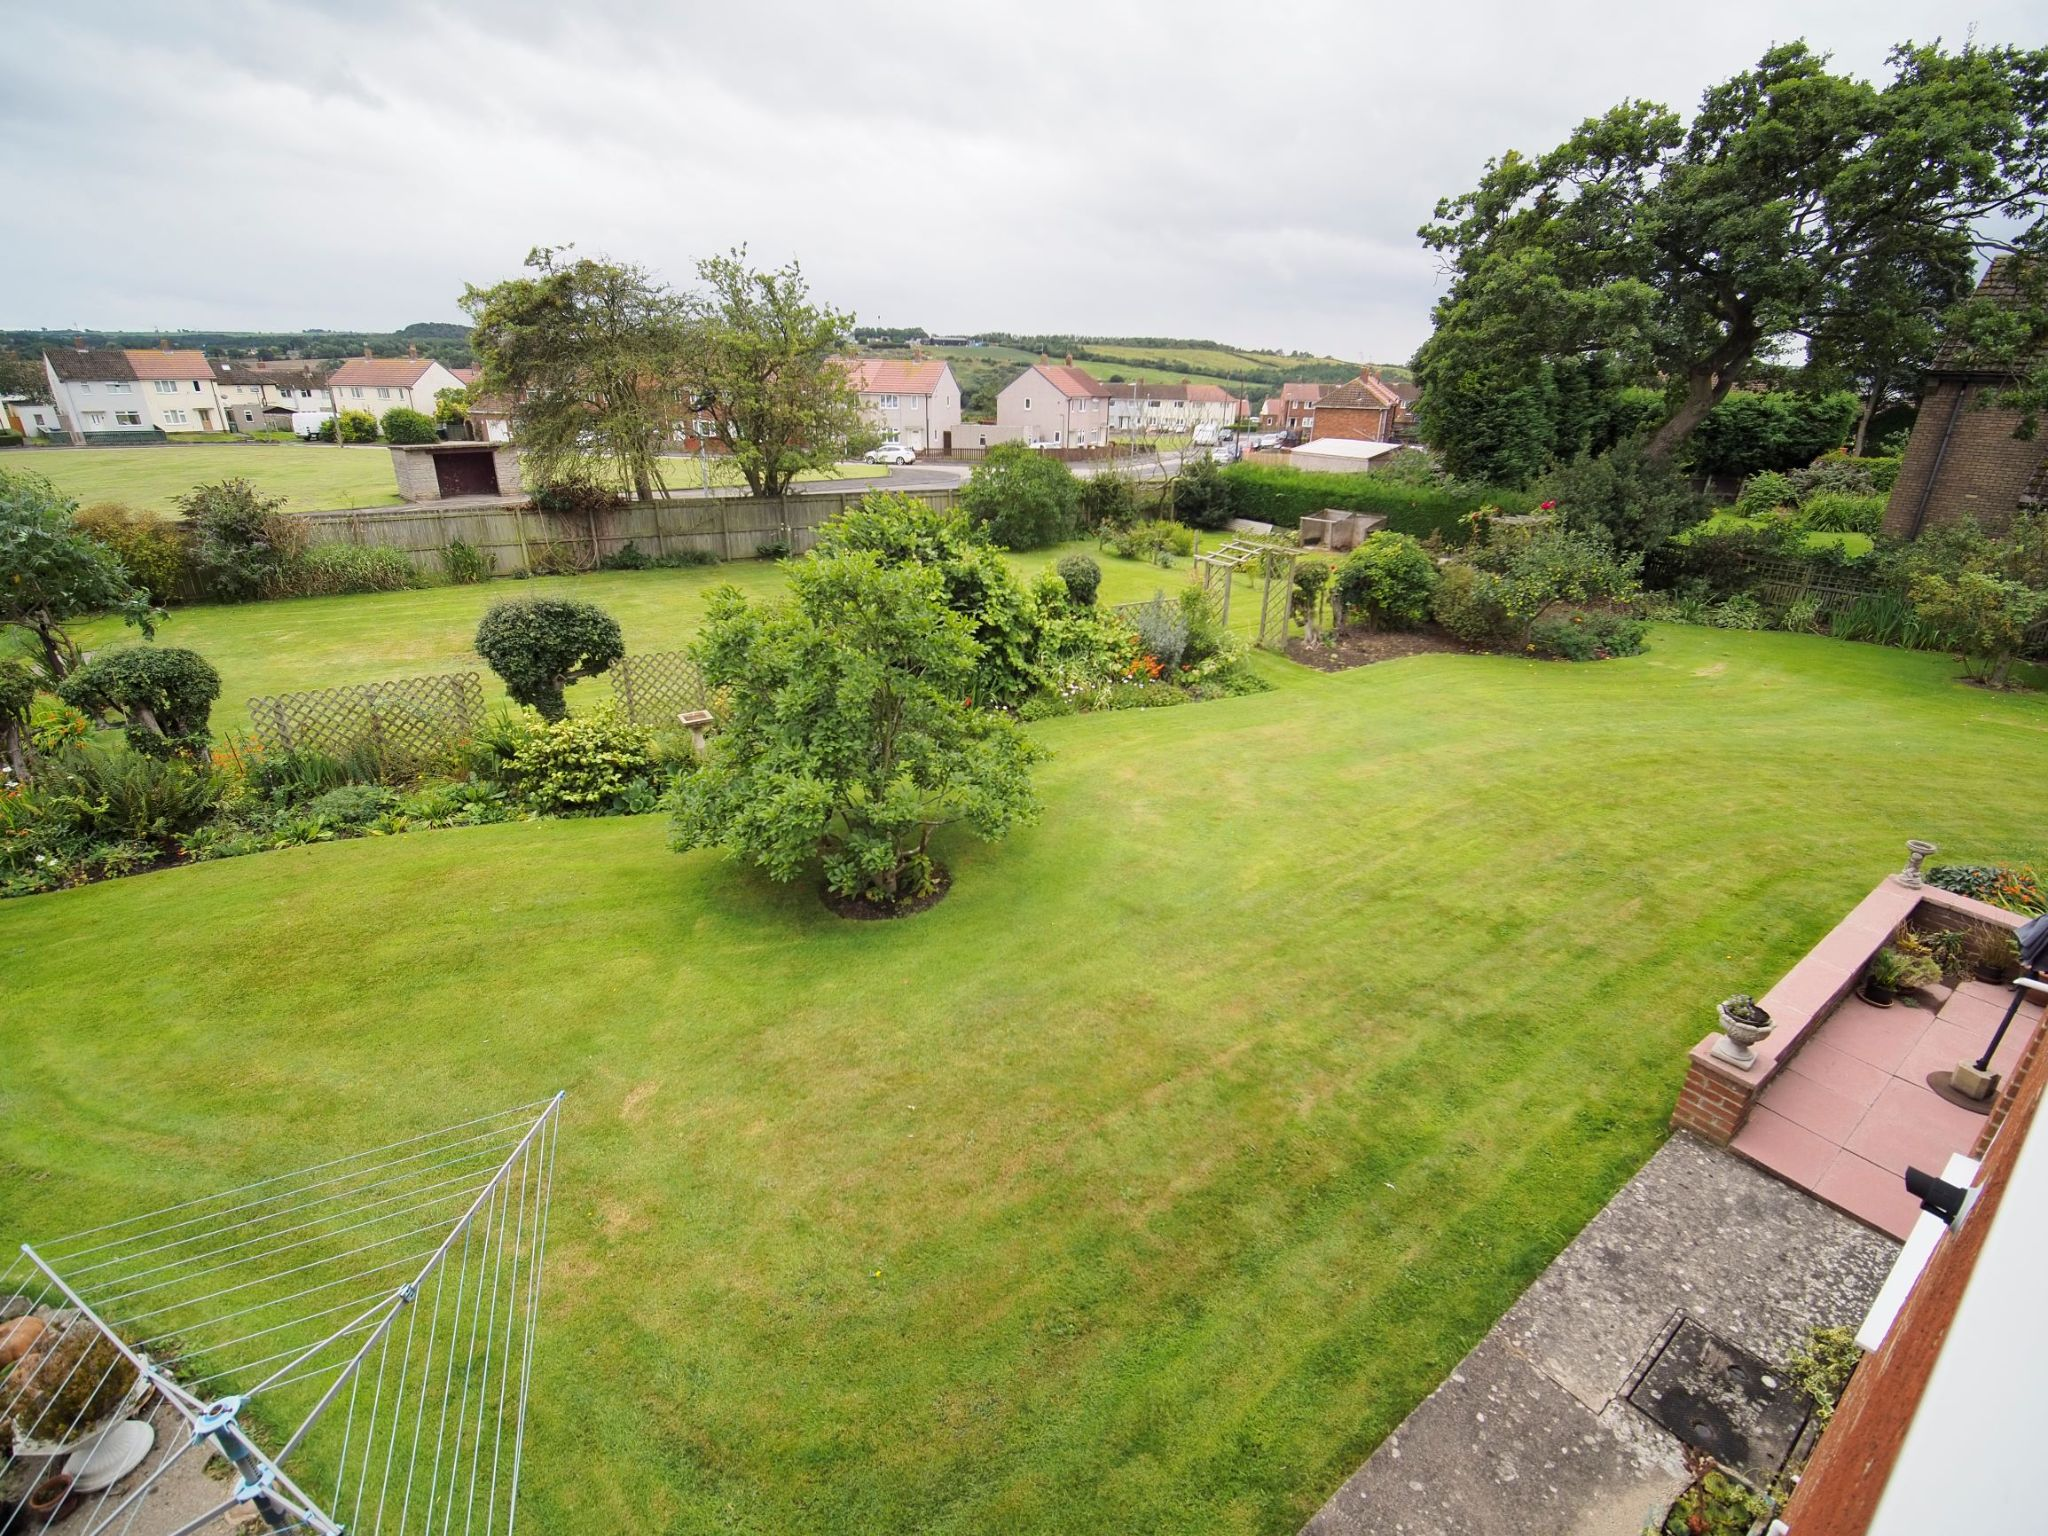 4 bedroom detached house For Sale in Willington - Garden view from upstairs.